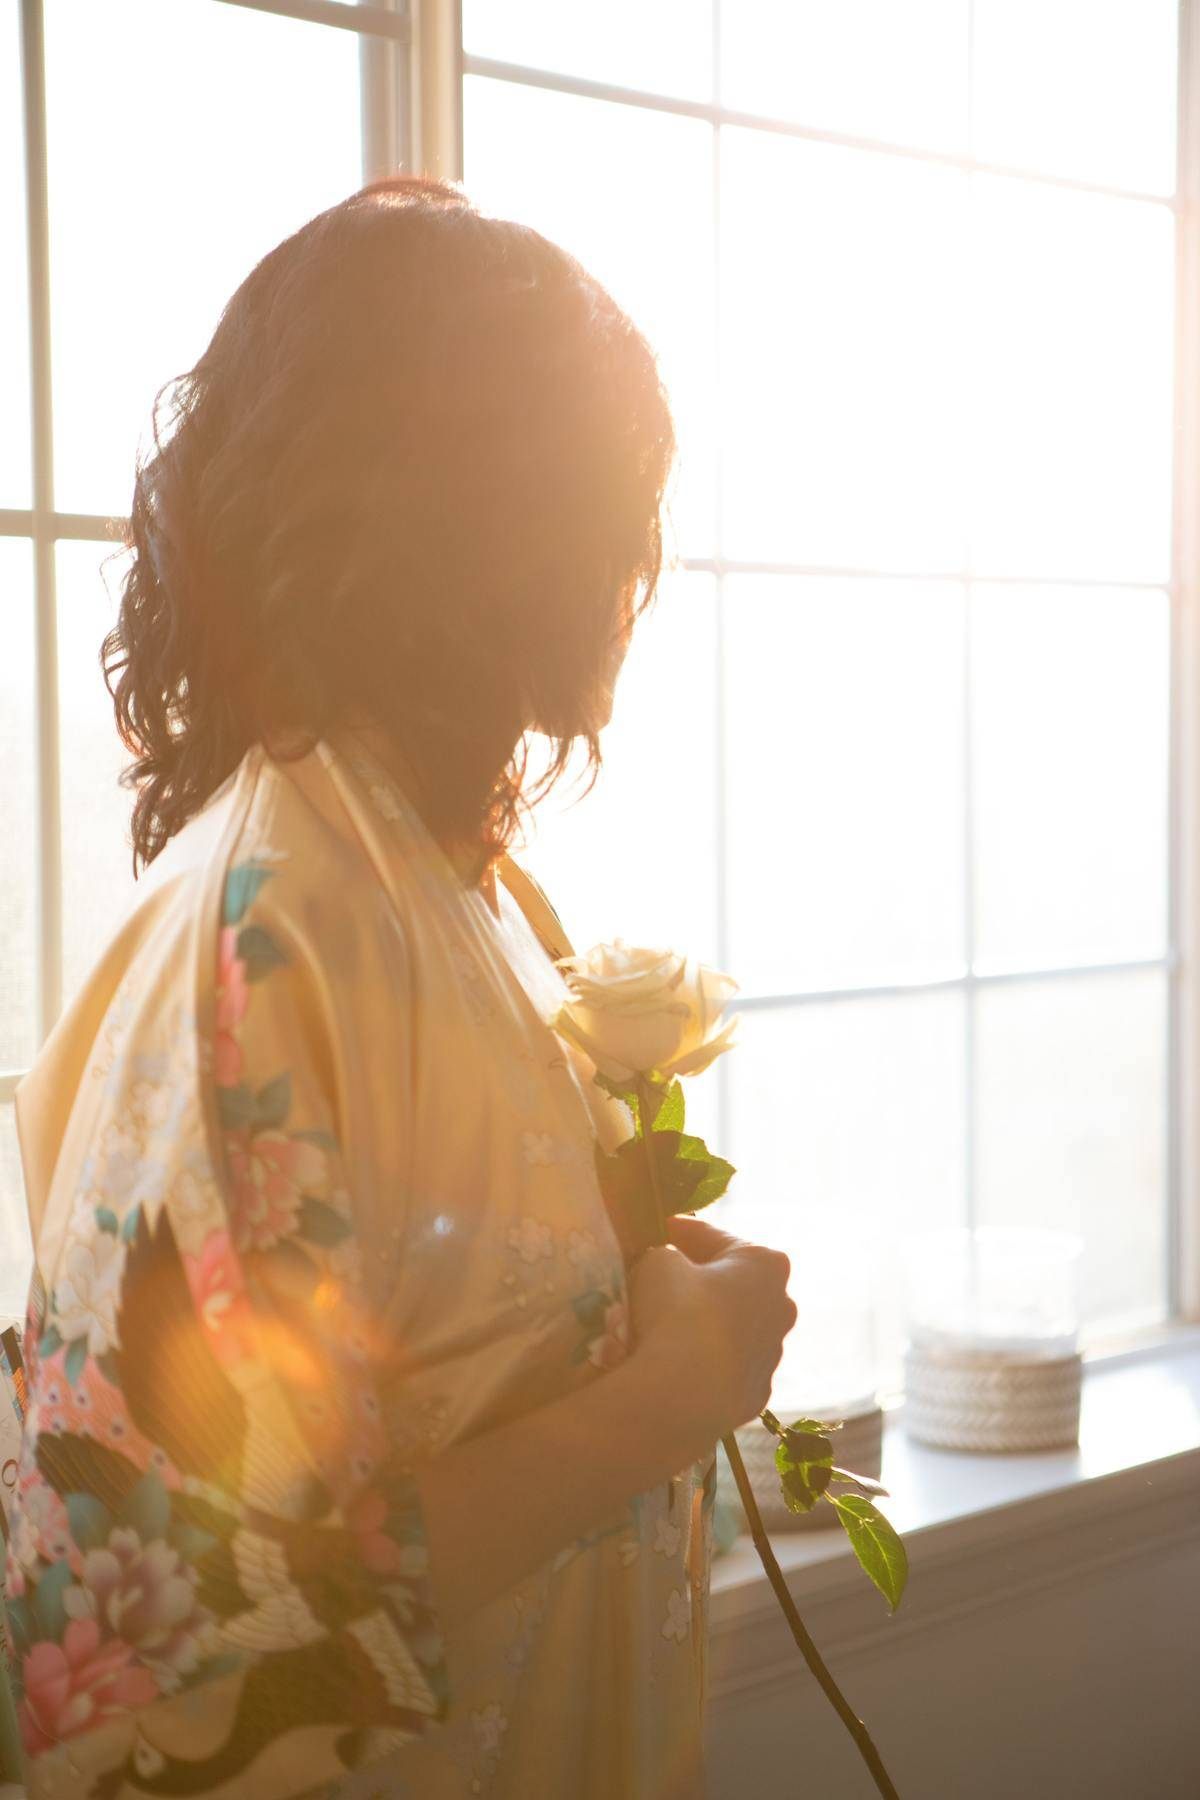 woman holding rose and looking out the window in sunlight